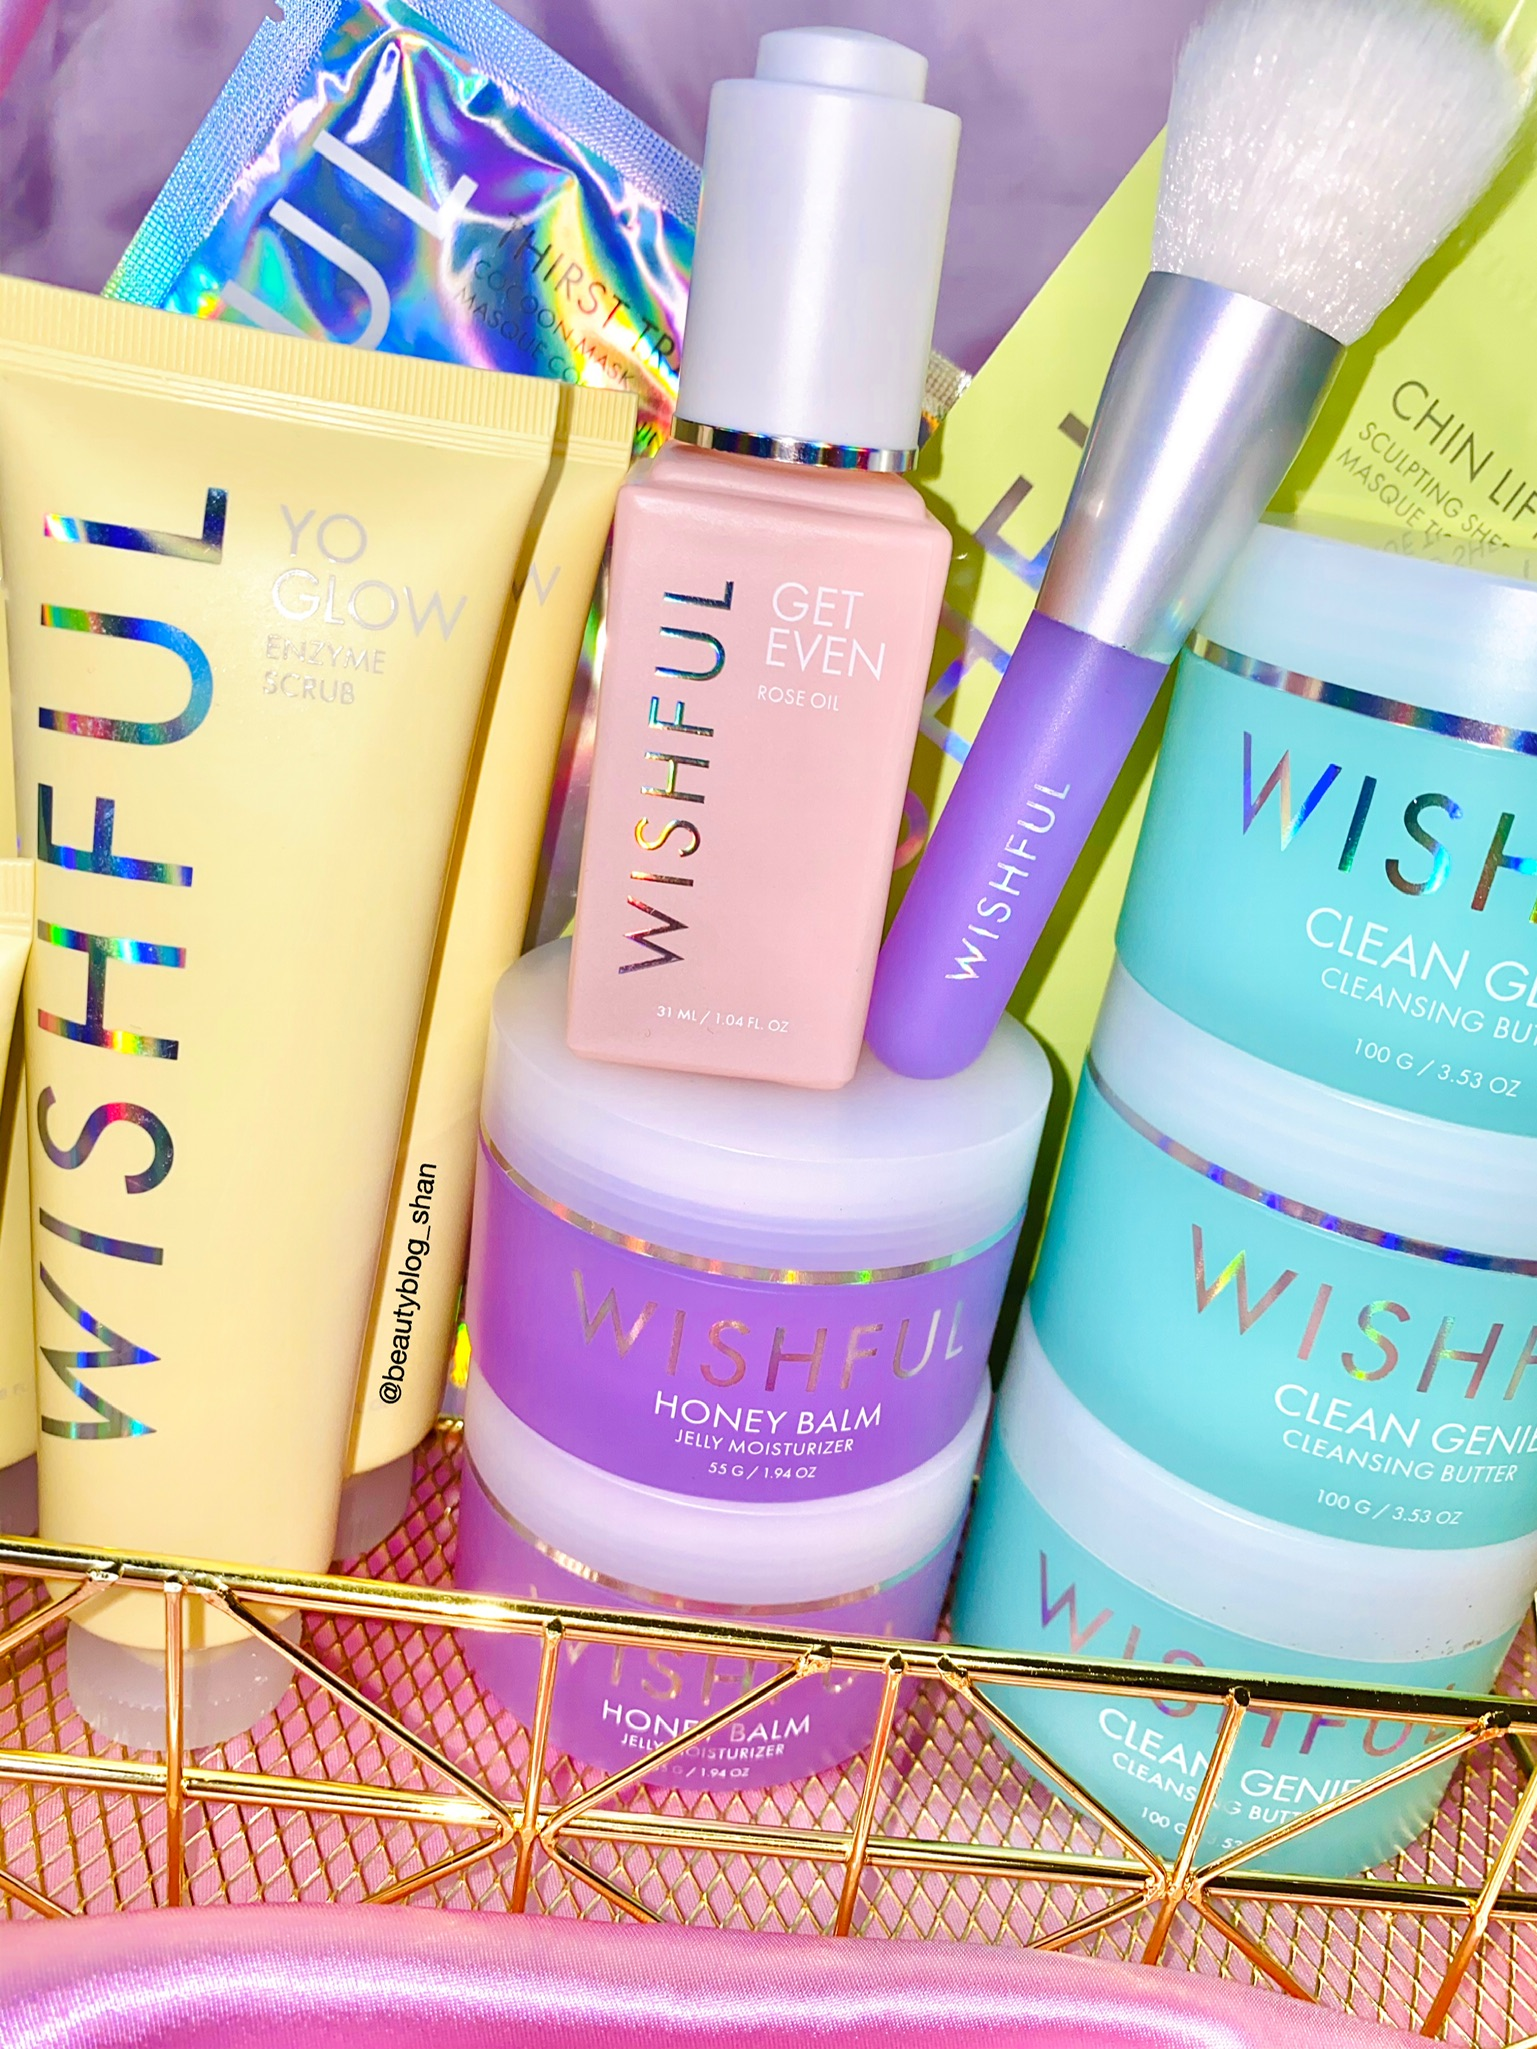 Wishful Skin collection